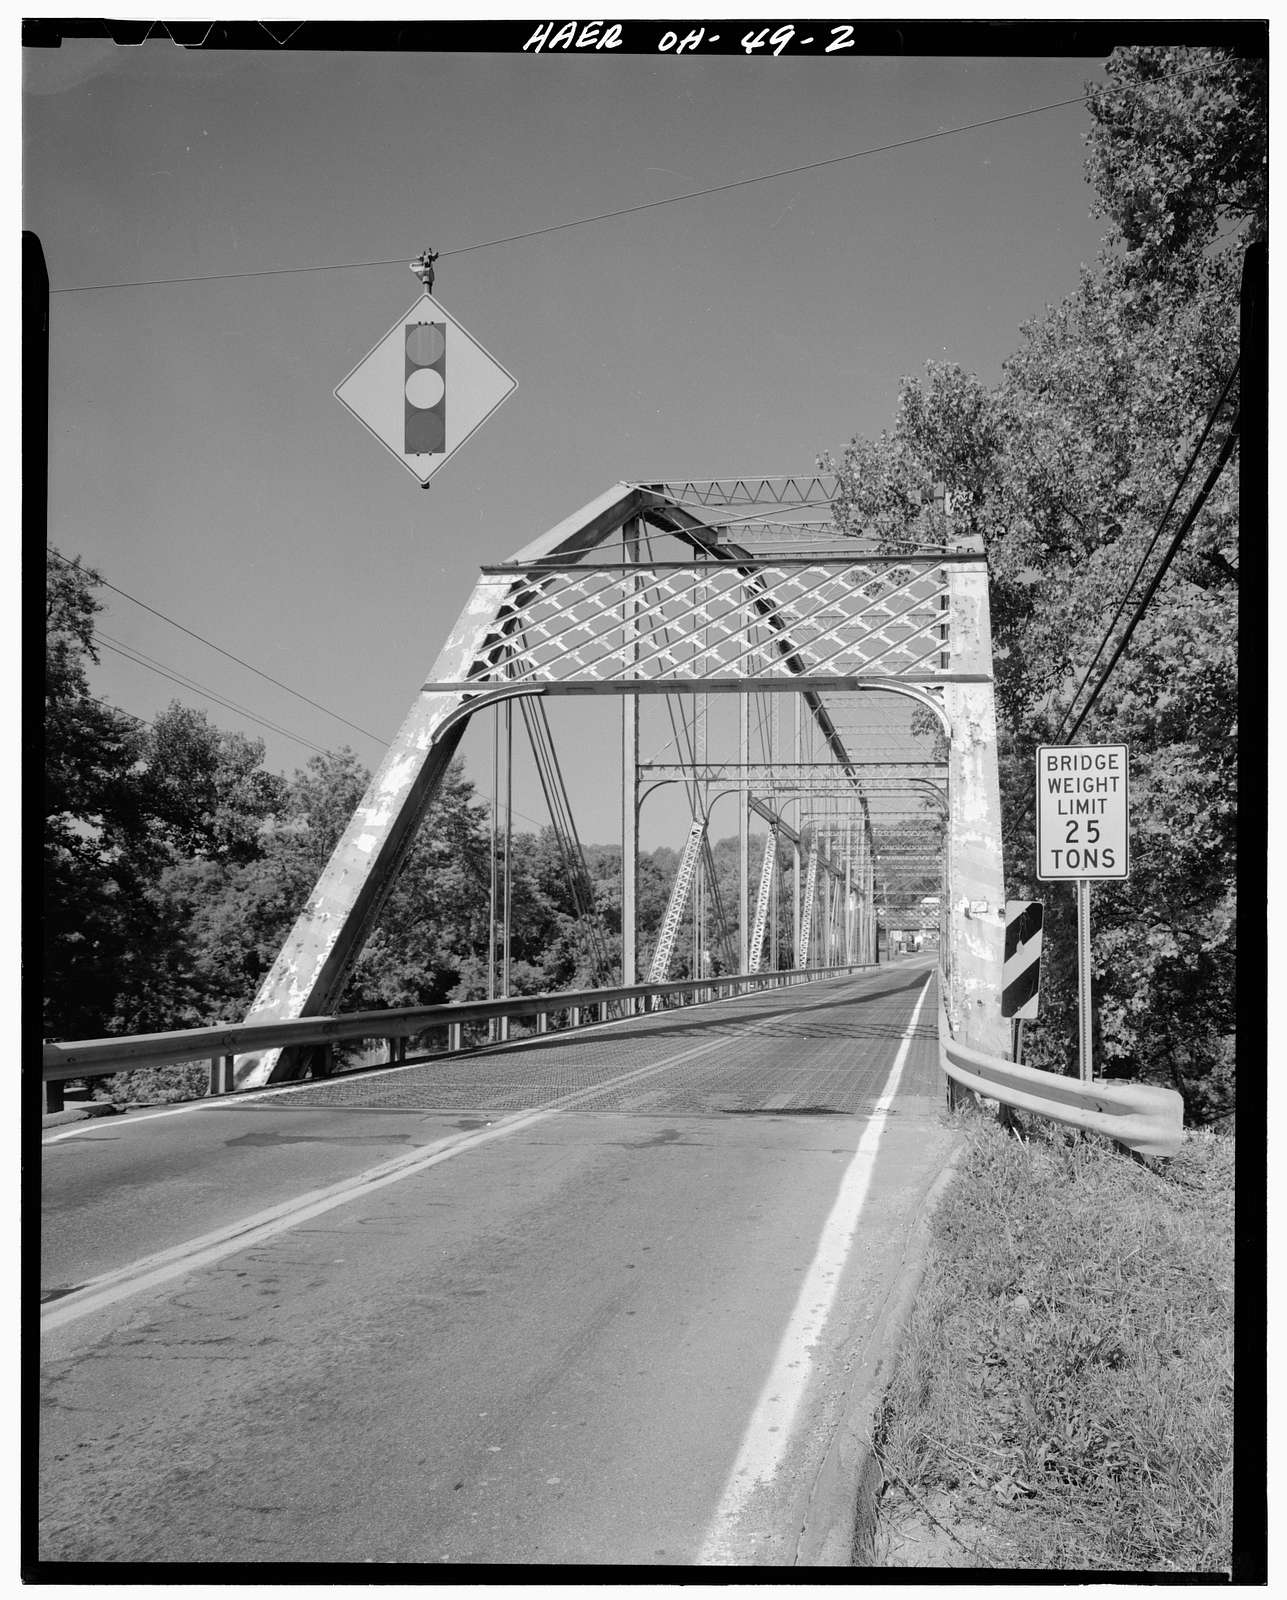 Harrison Road Camelback Through Truss Bridge, Spanning Great Miami River at Harrison Road (Route 457), Miamitown, Hamilton County, OH